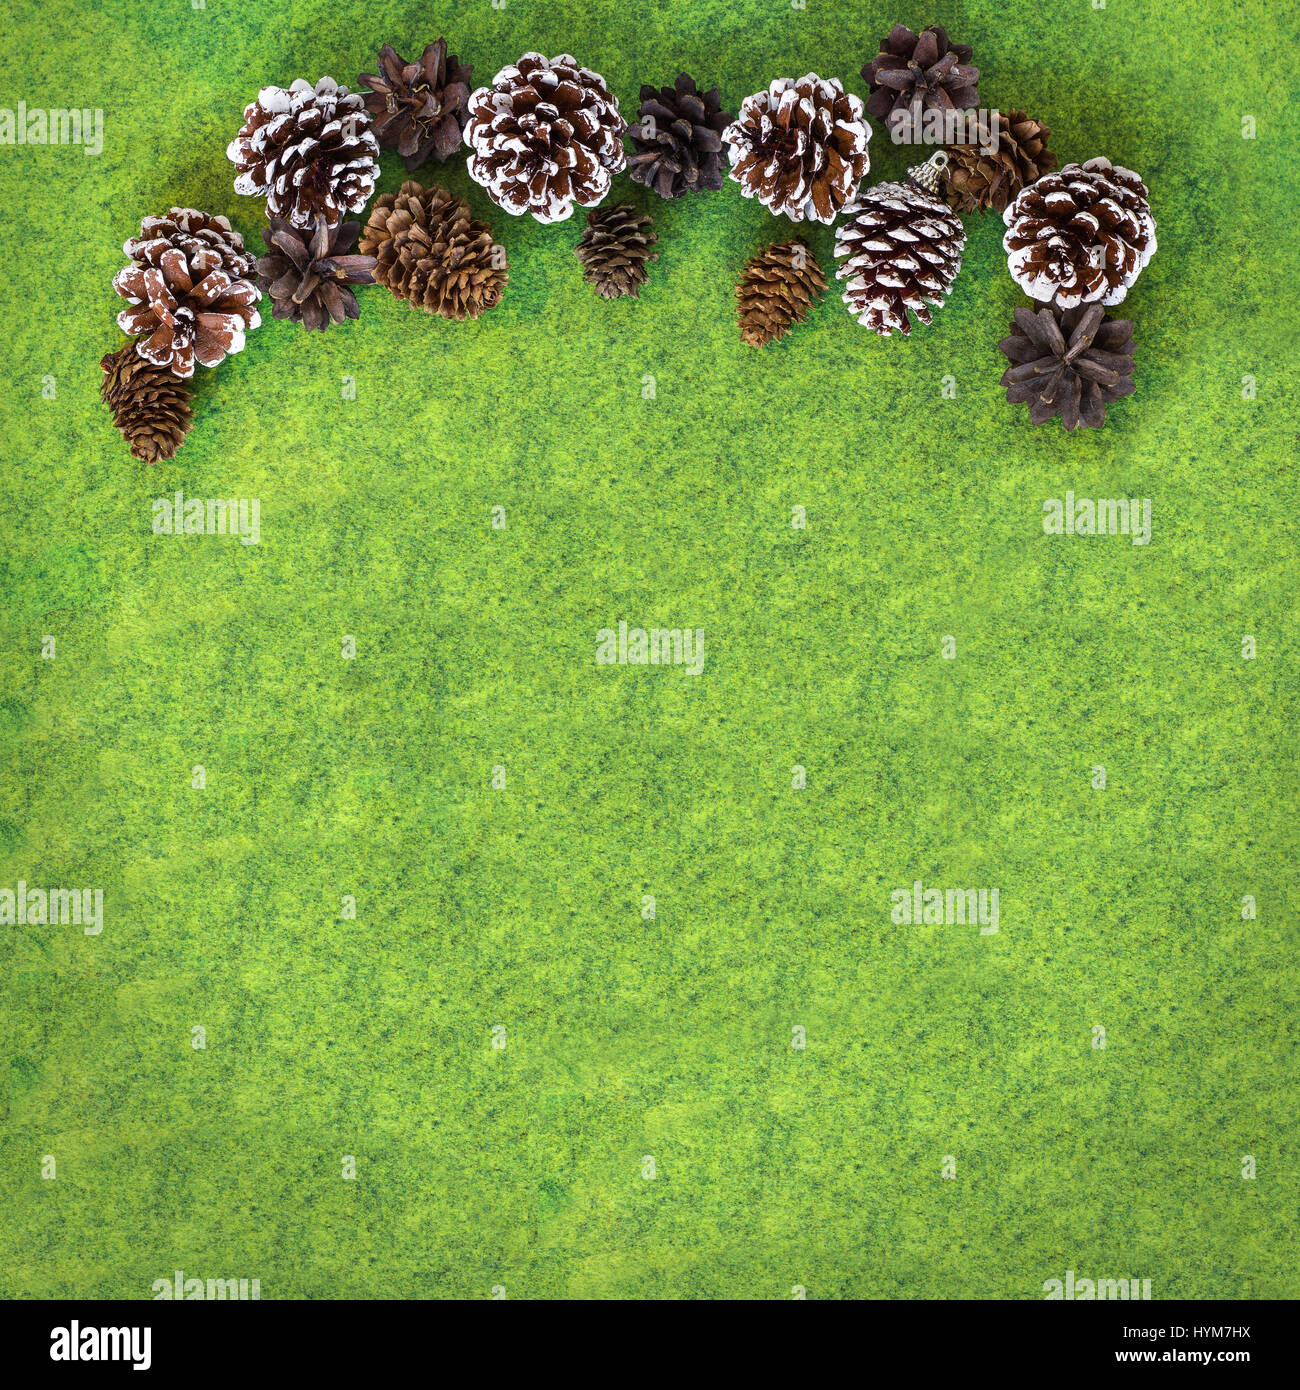 Pine and Fir cones on vibrant green felt gradient background. Square Christmas greetings card background - Stock Image